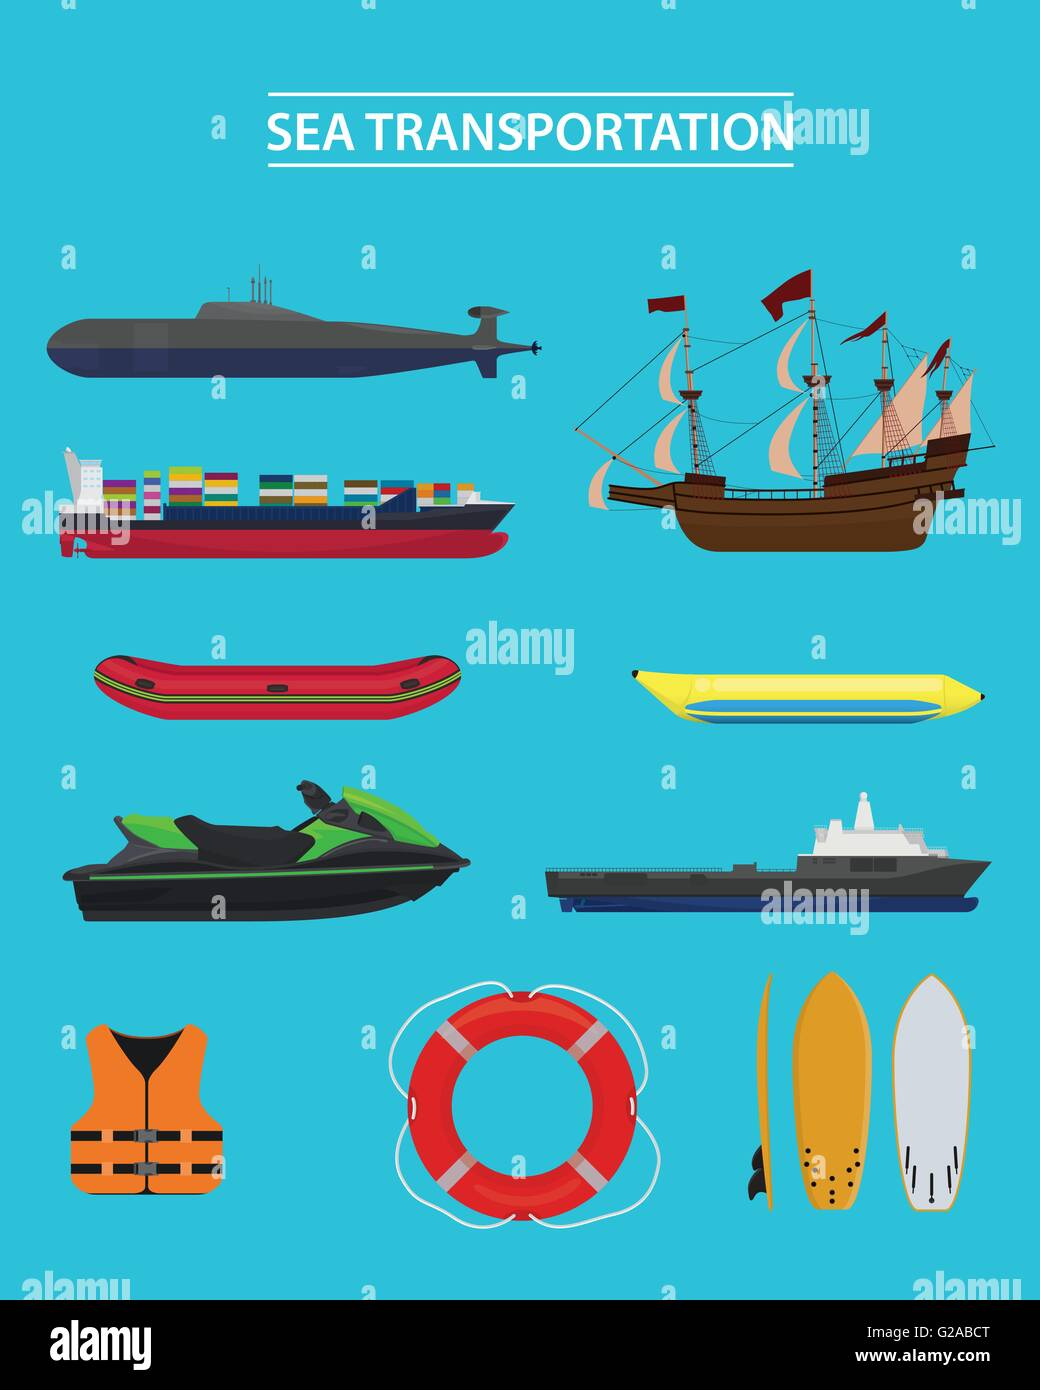 sea transportation collection vector graphic - Stock Image